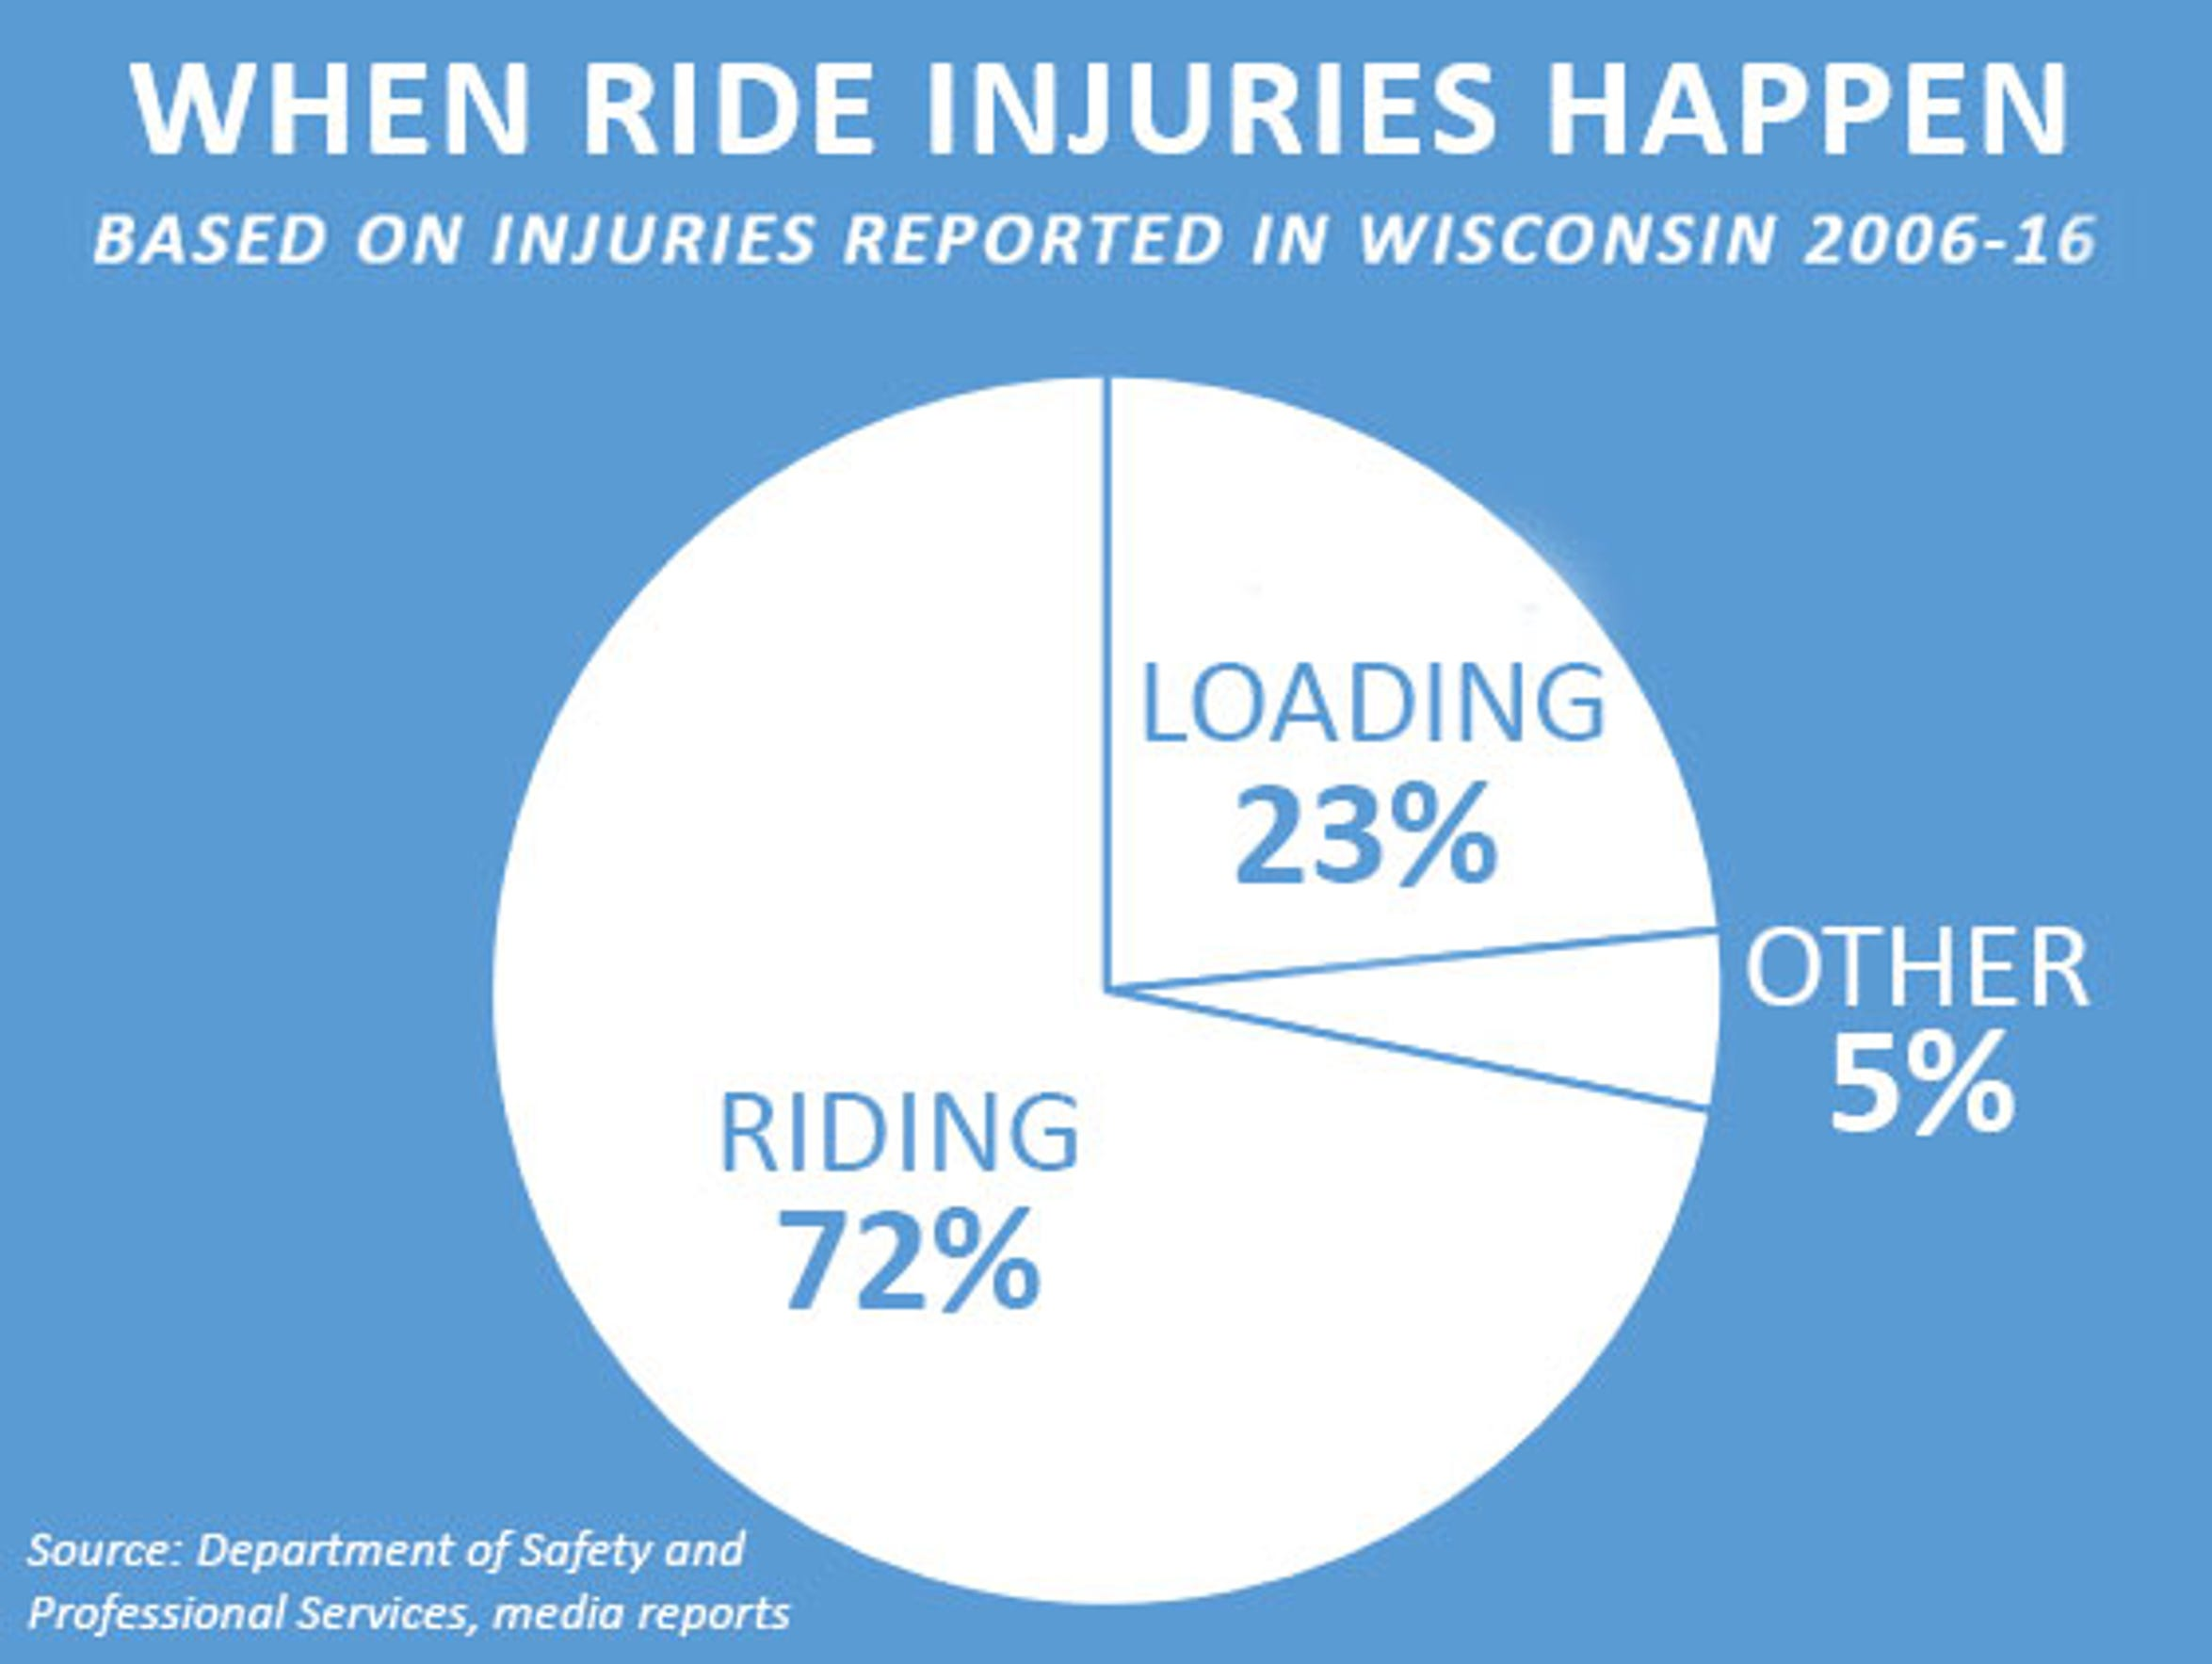 The majority of injuries on amusement park rides happen